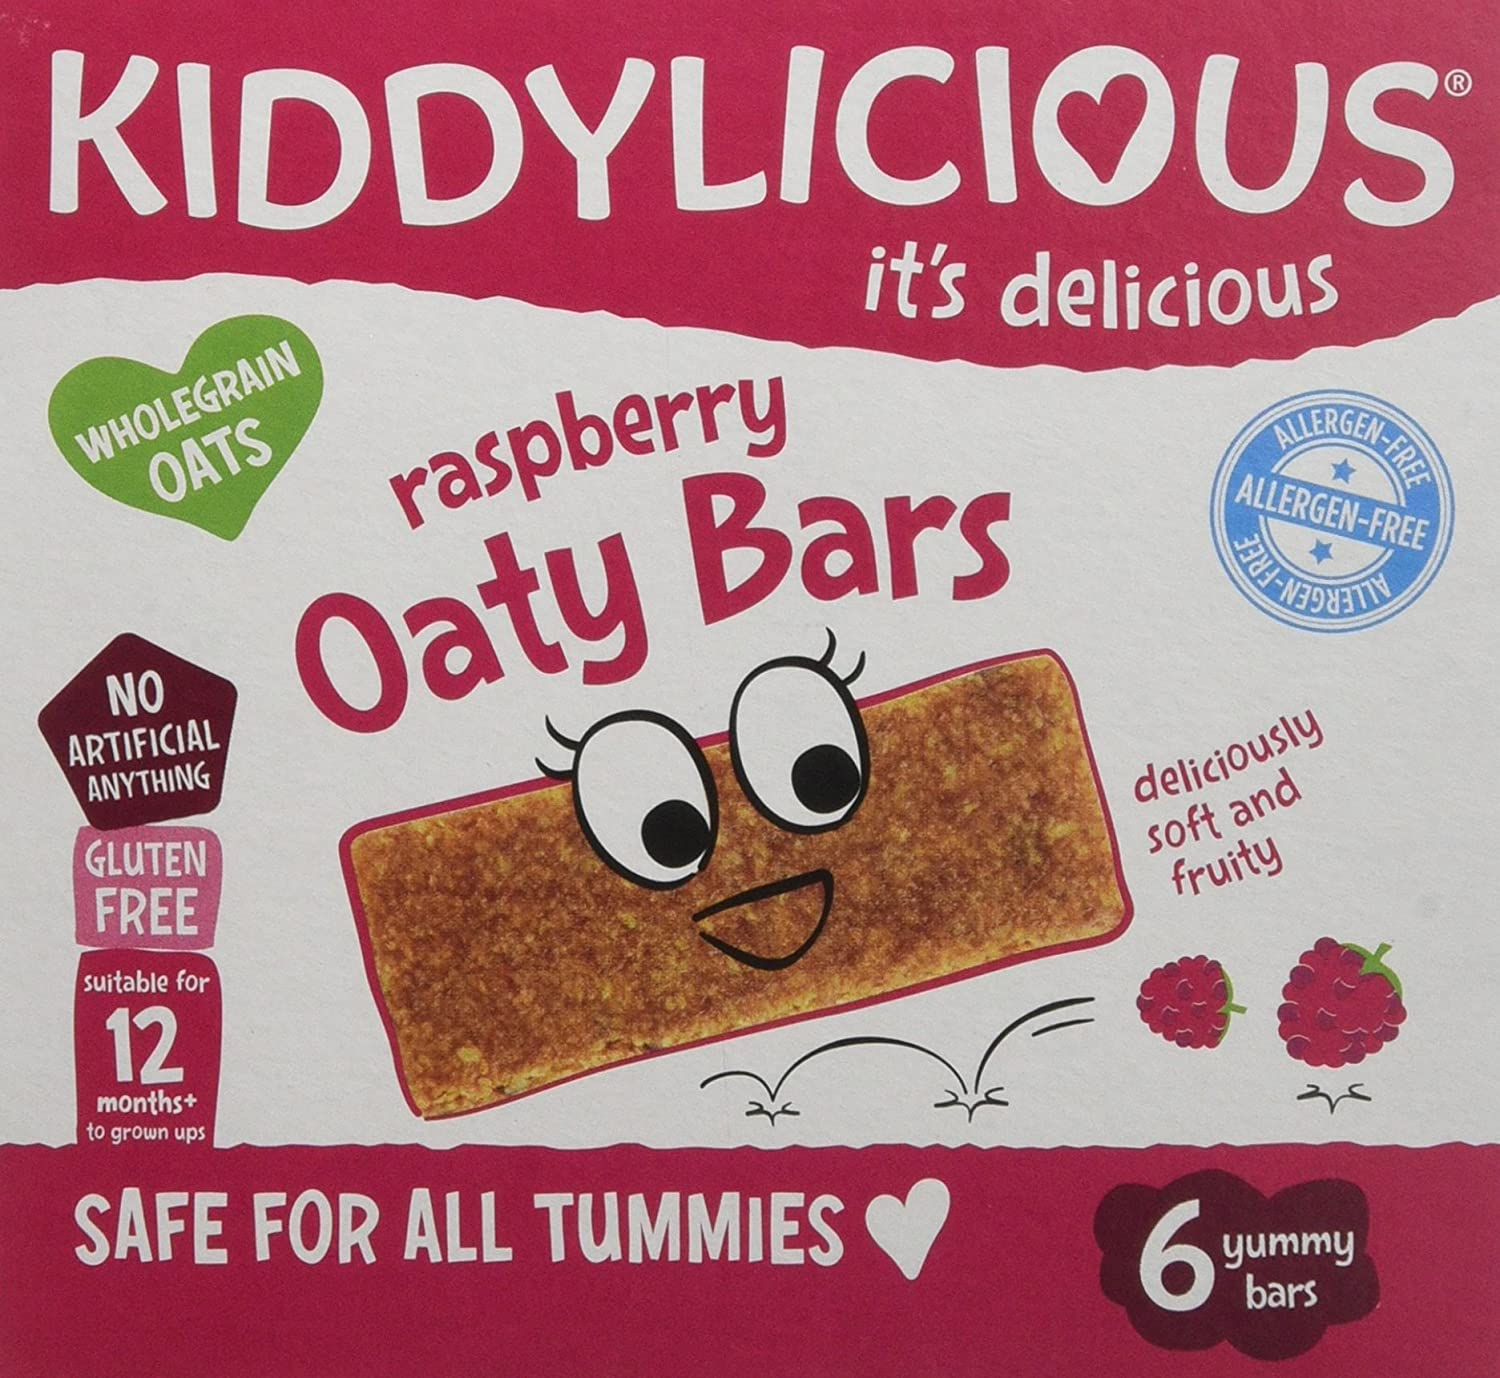 Kiddylicious Raspberry Oaty Bars, 6 x 20 g, (Pack of 6, Total 36 Bars) The Kids Food Co. 1080110